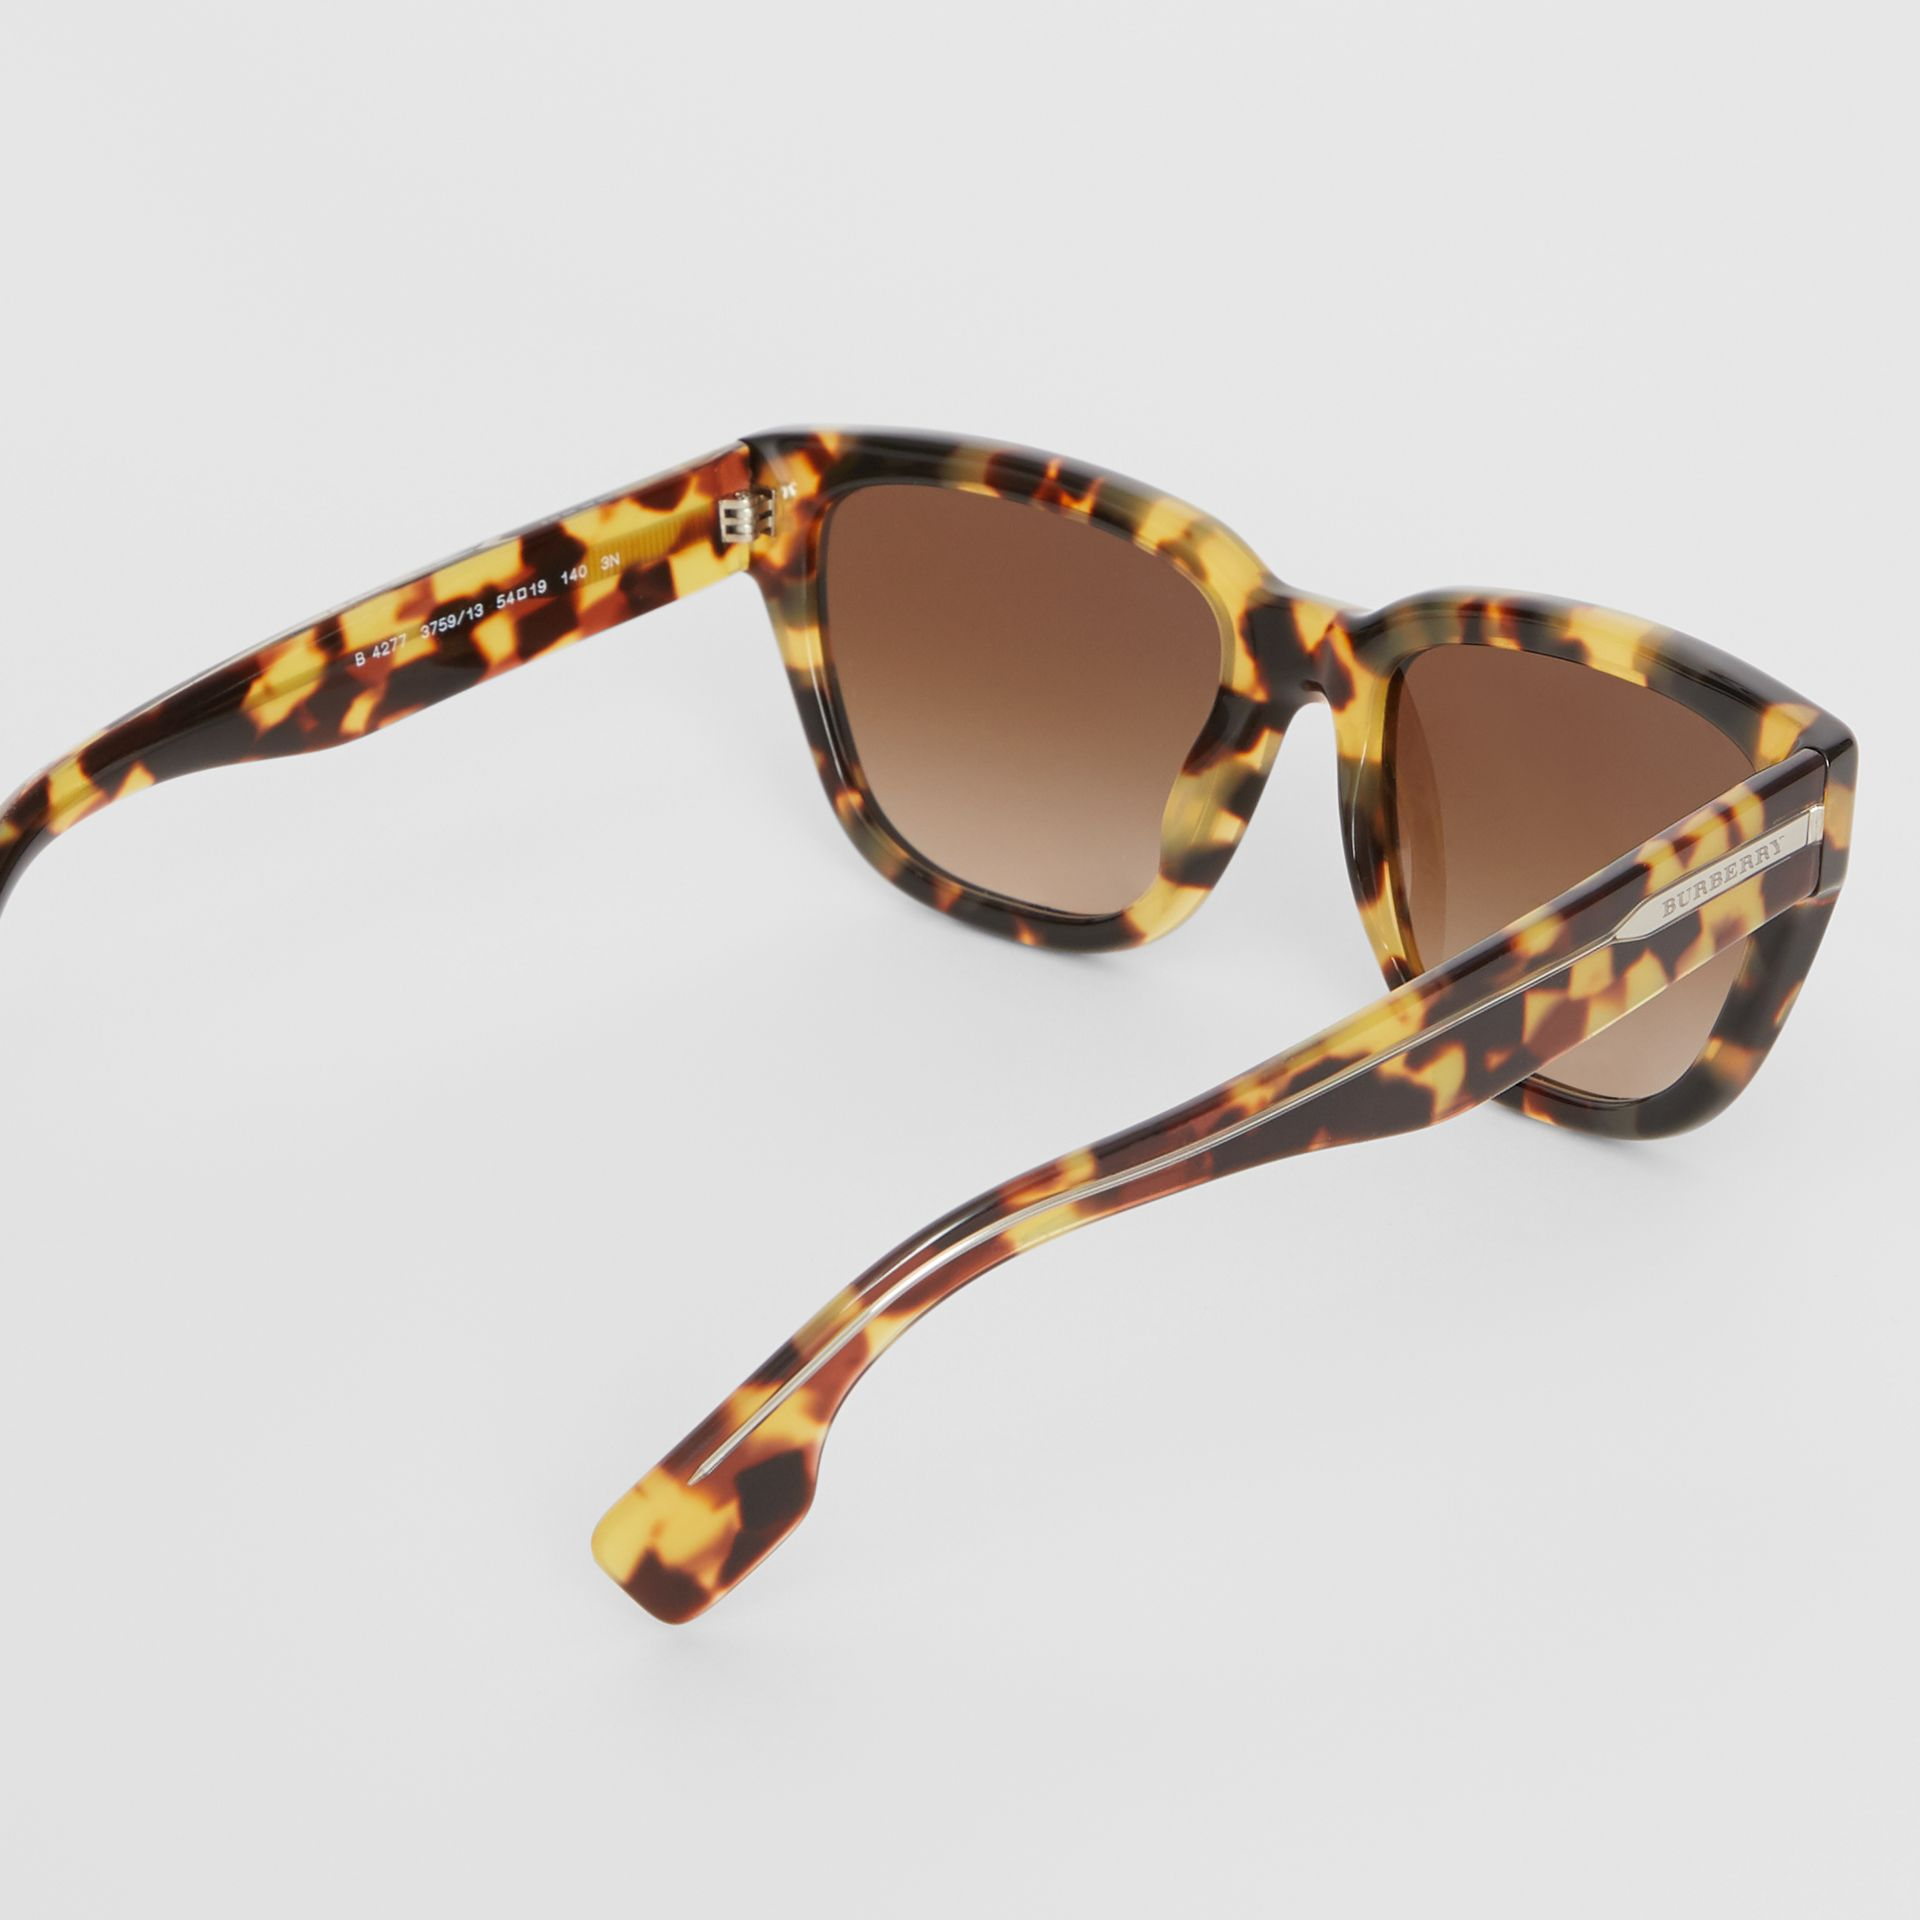 Square Frame Sunglasses in Tortoiseshell - Women | Burberry - gallery image 4